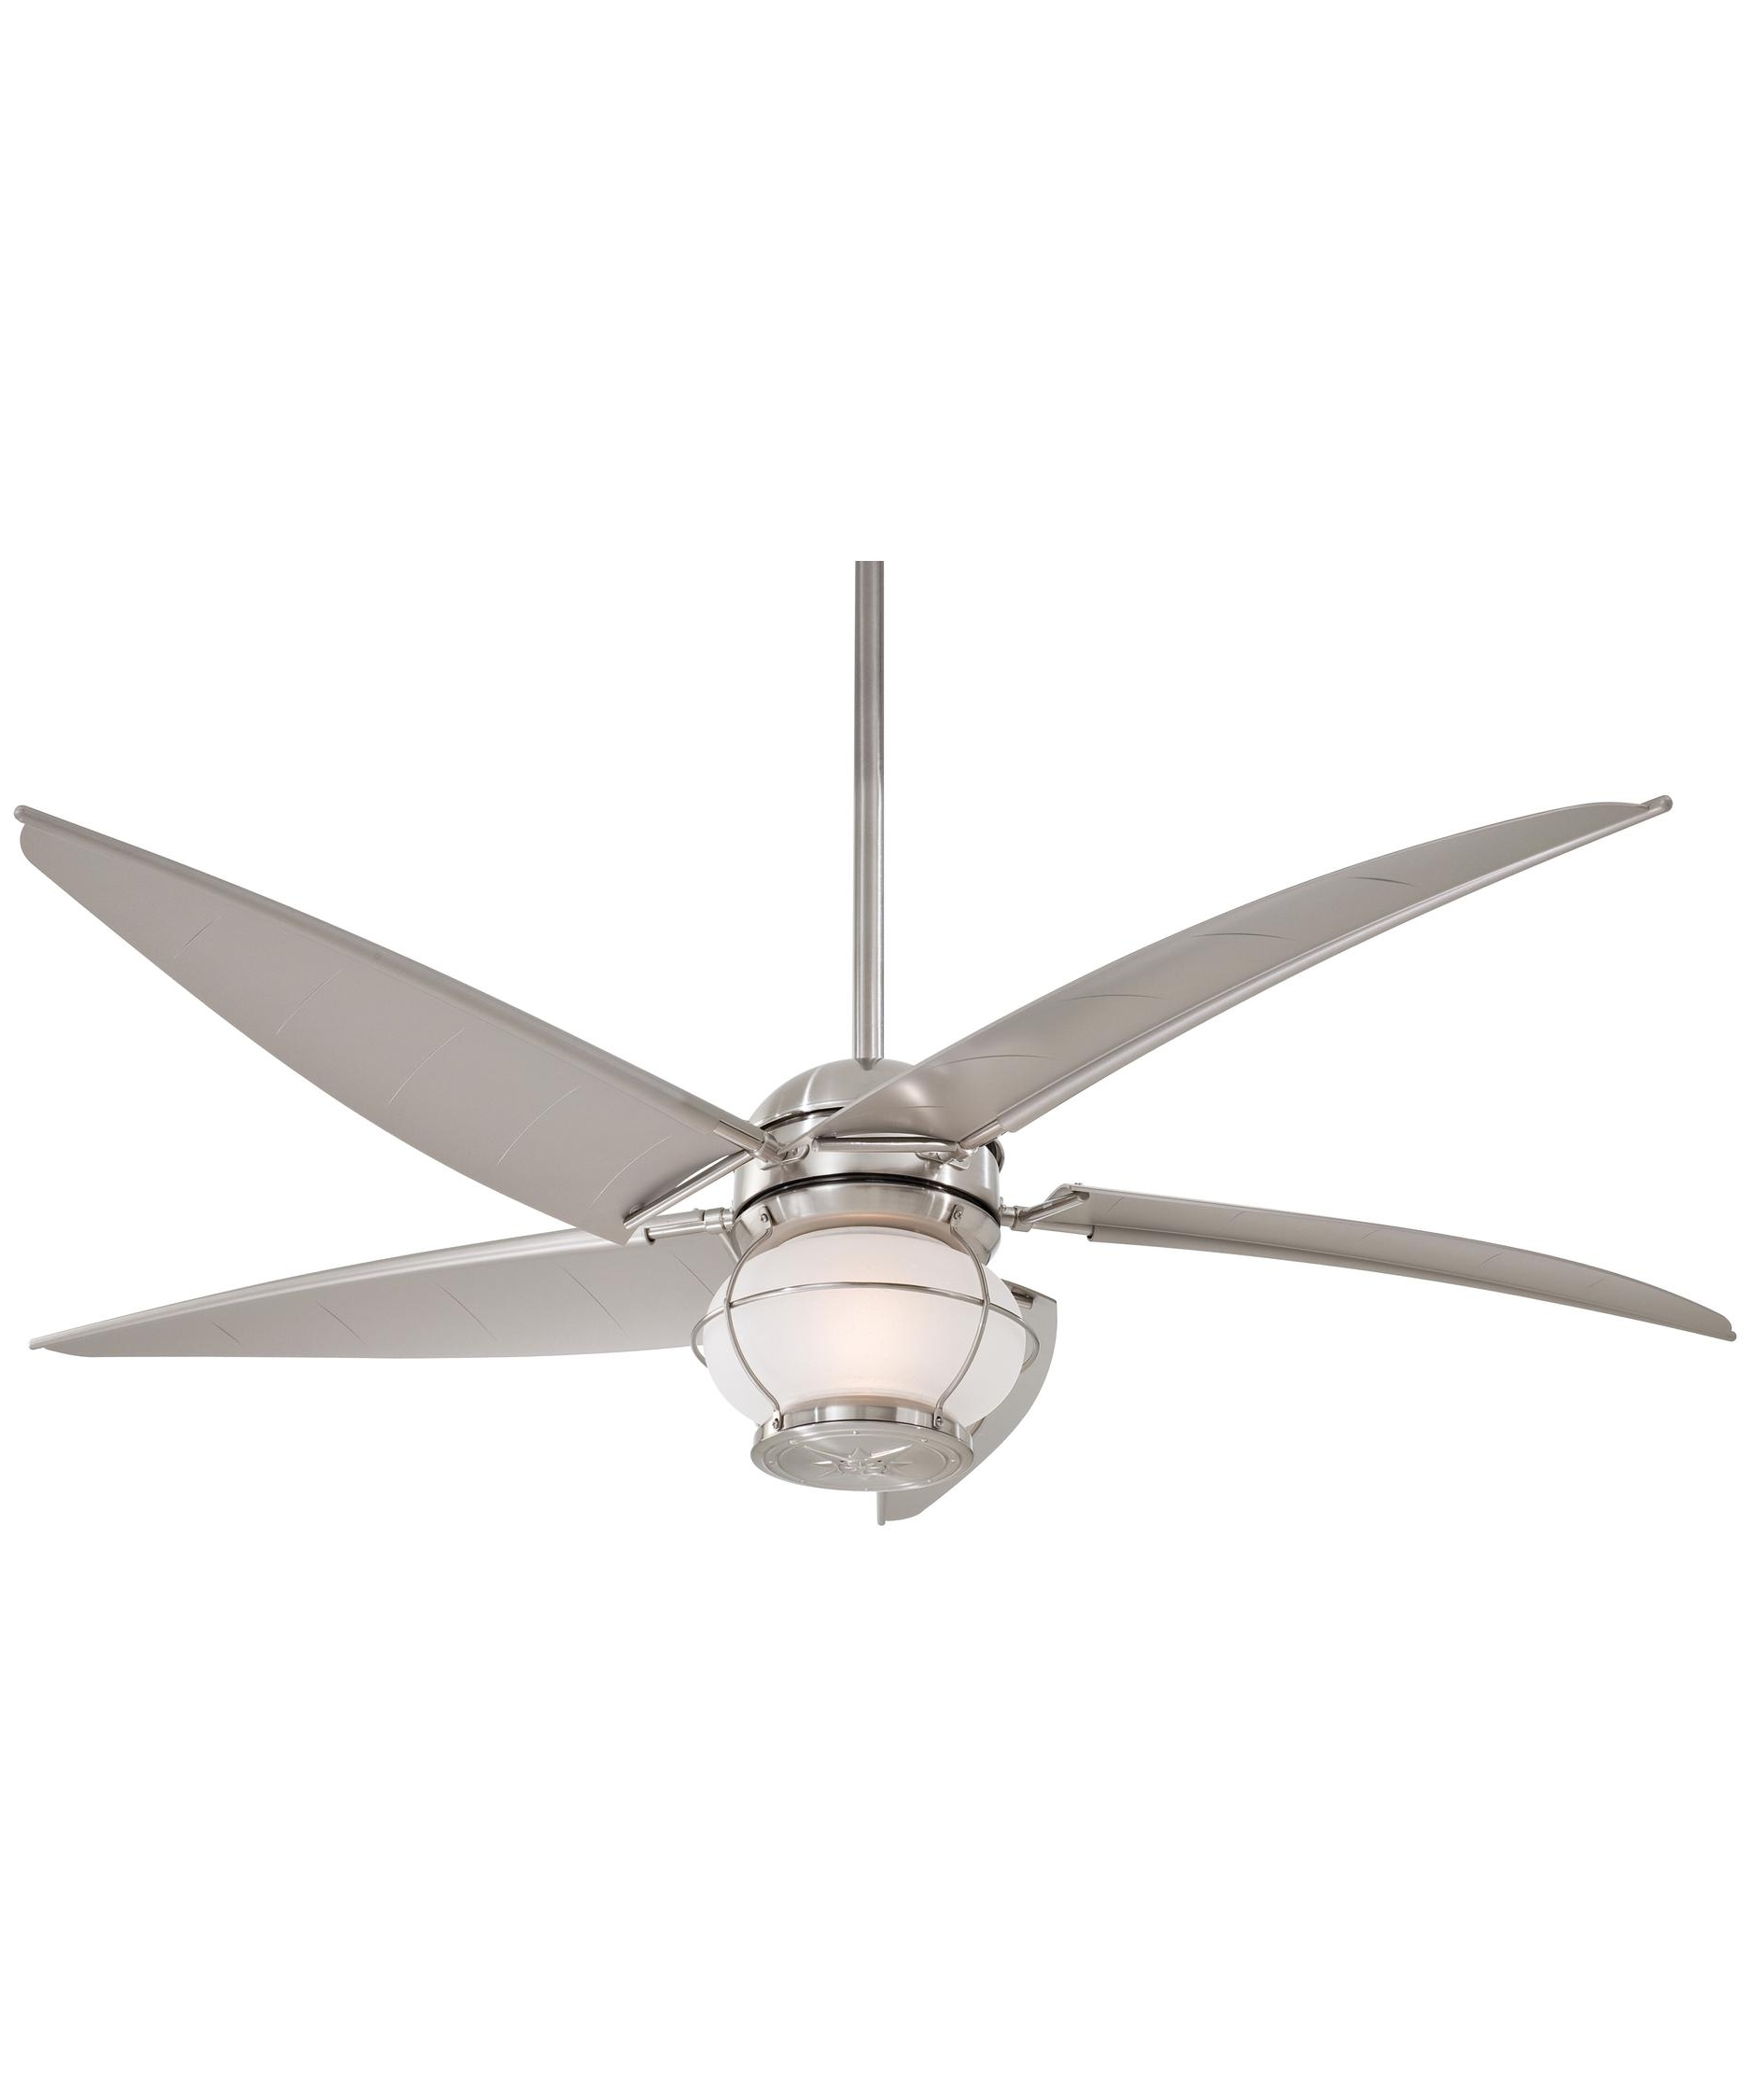 Minka Aire F579 Magellan 60 Inch 5 Blade Ceiling Fan (View 3 of 20)